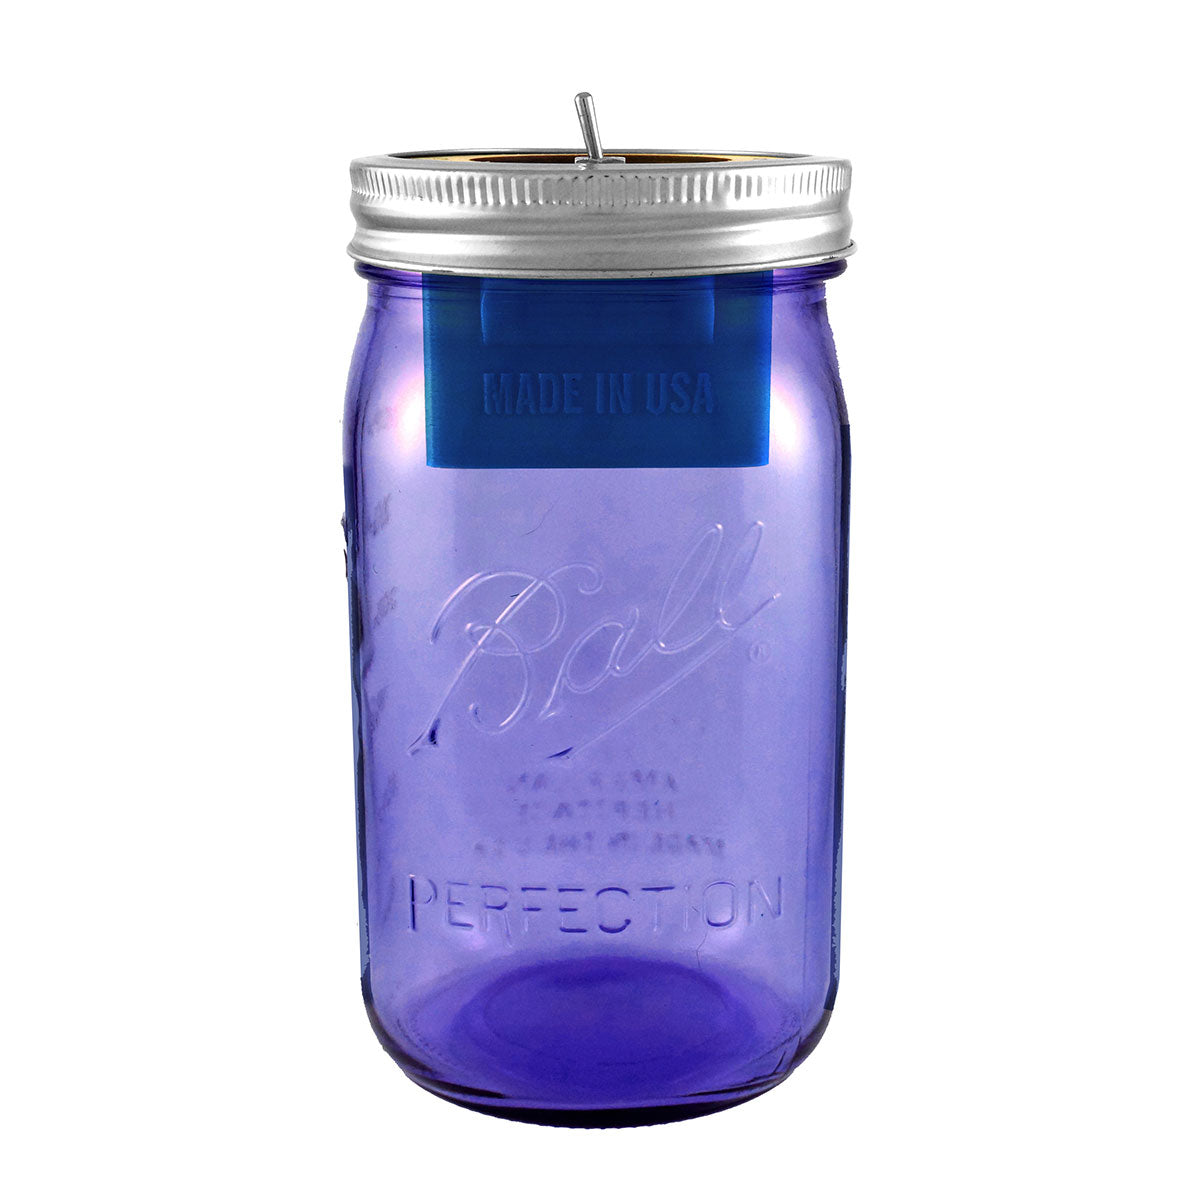 Bluetooth Mason Jar Speaker with Purple Jar (32 oz)